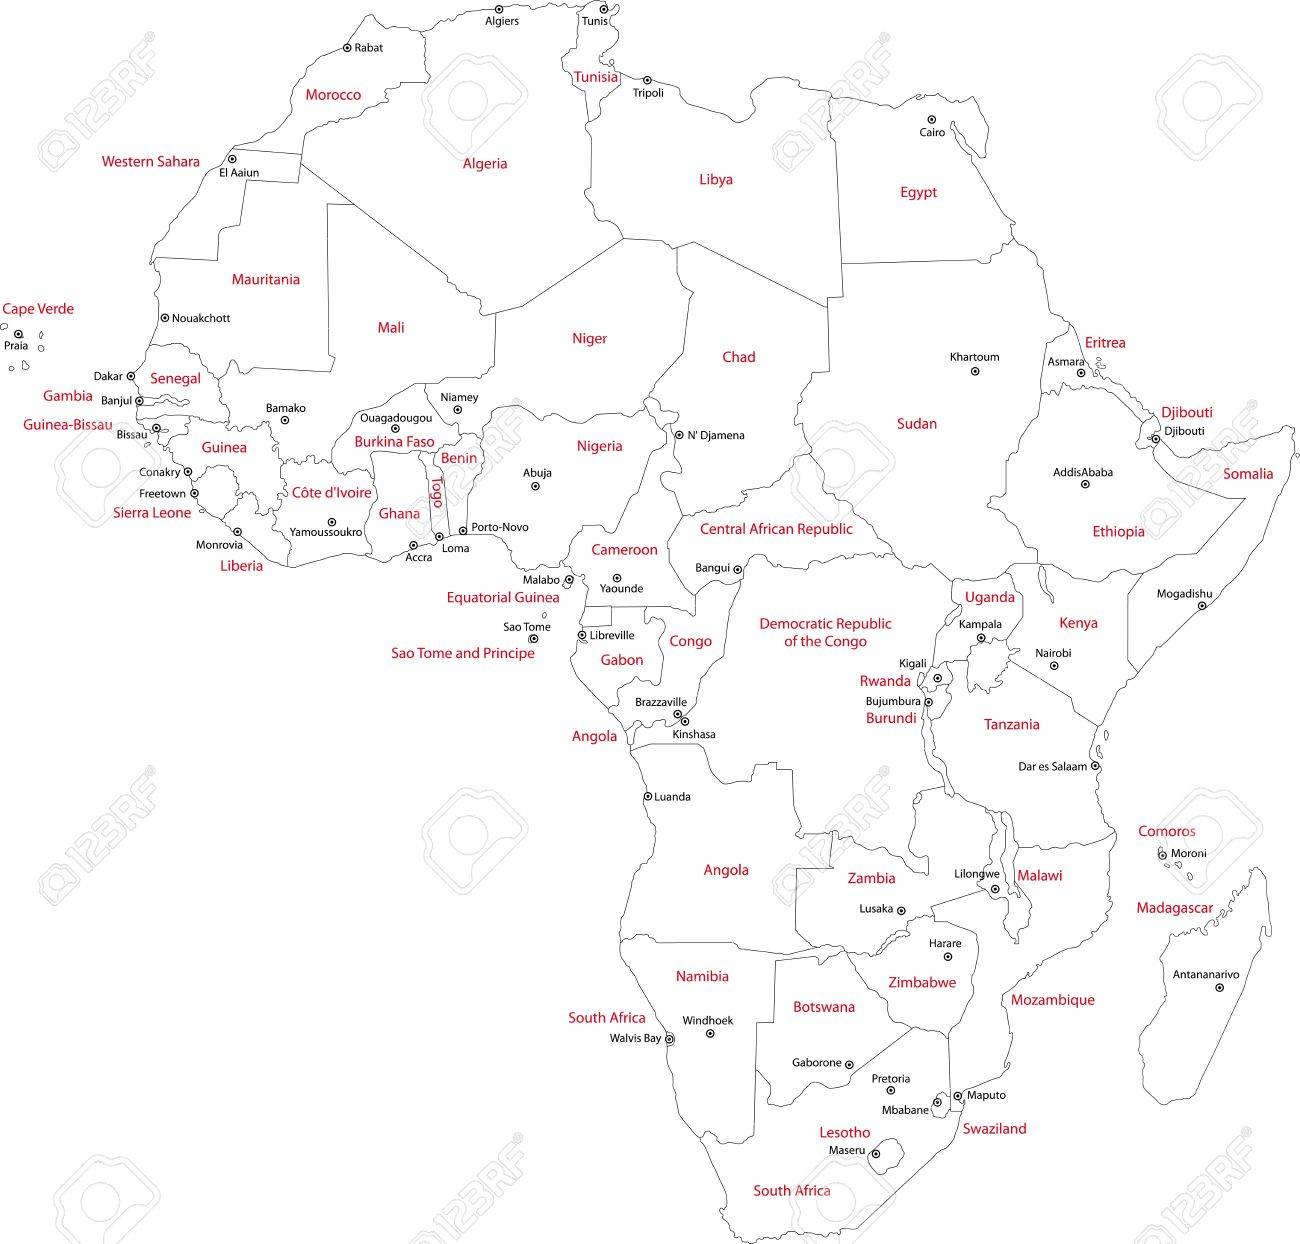 Africa Map With Countries And Capital Cities Royalty Free Cliparts - Cities map of algeria